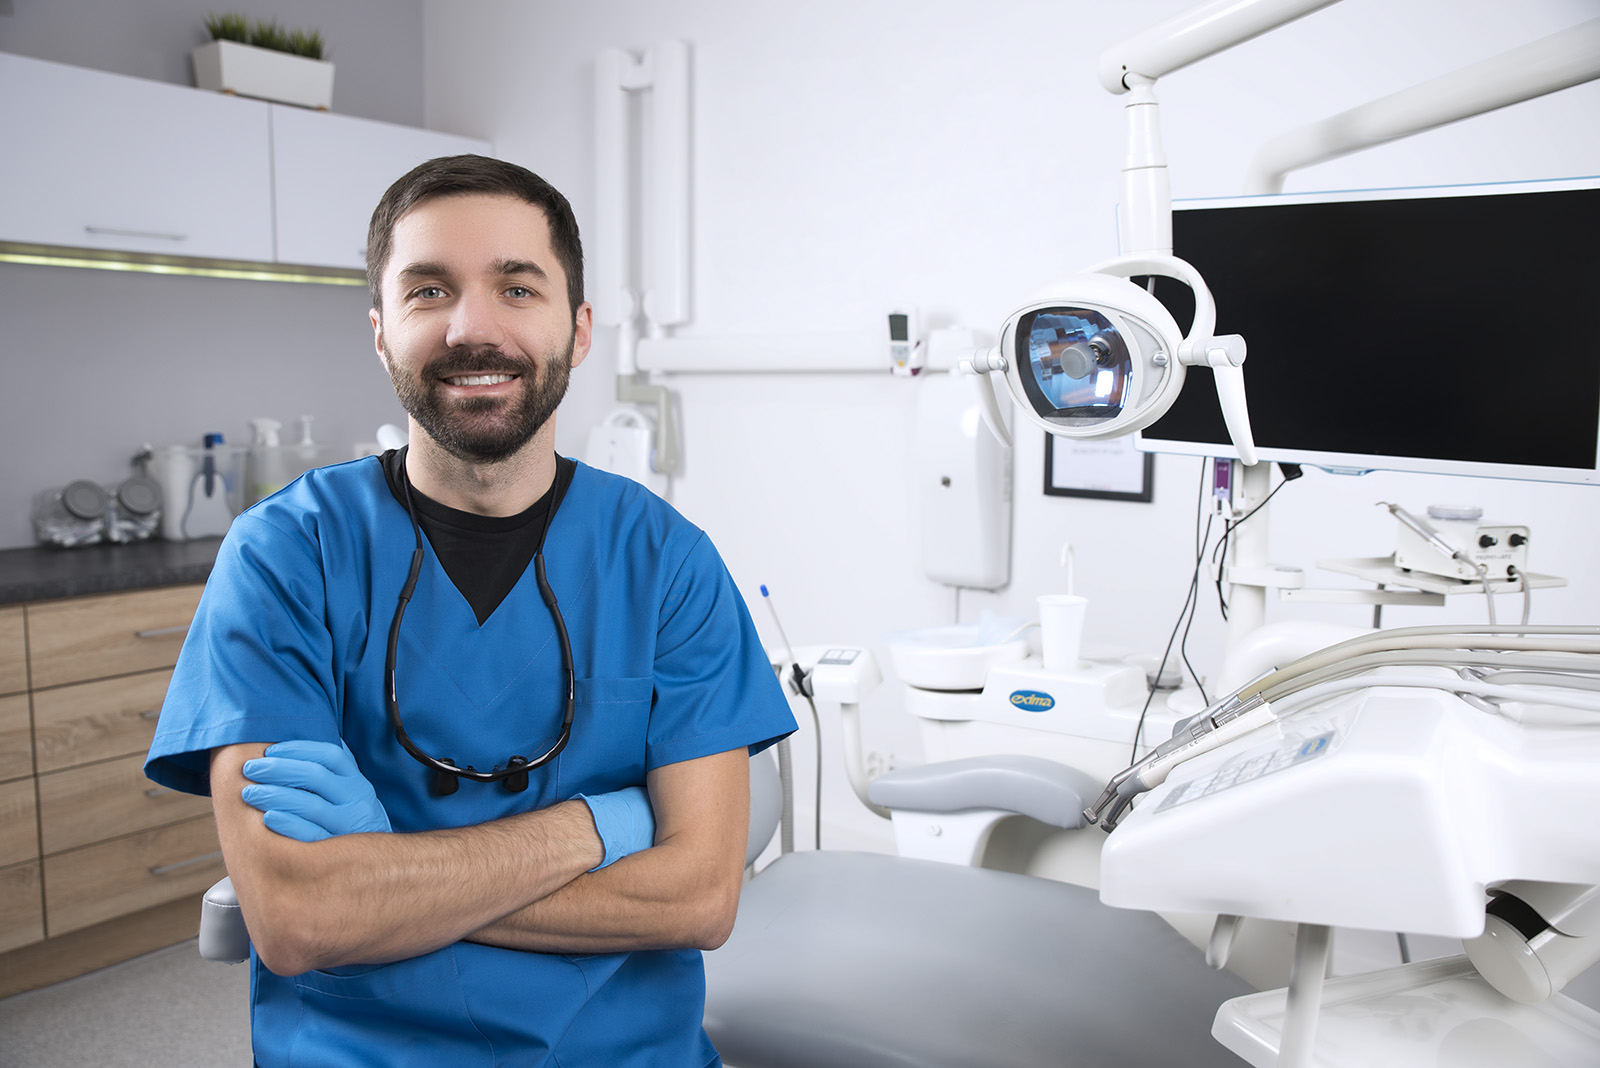 dentist who accepts medicaid ready to see patient in exam room